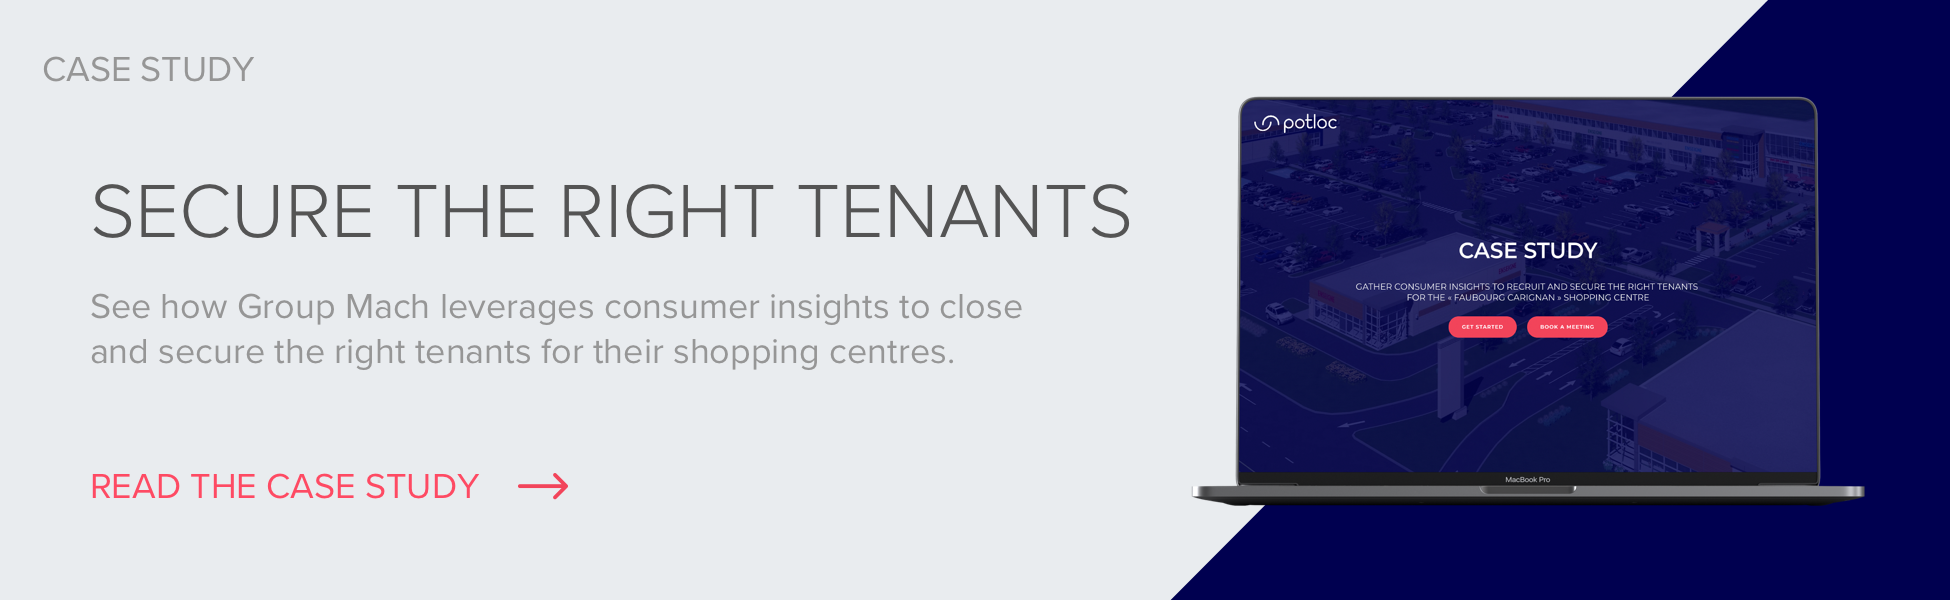 Secure the right tenants